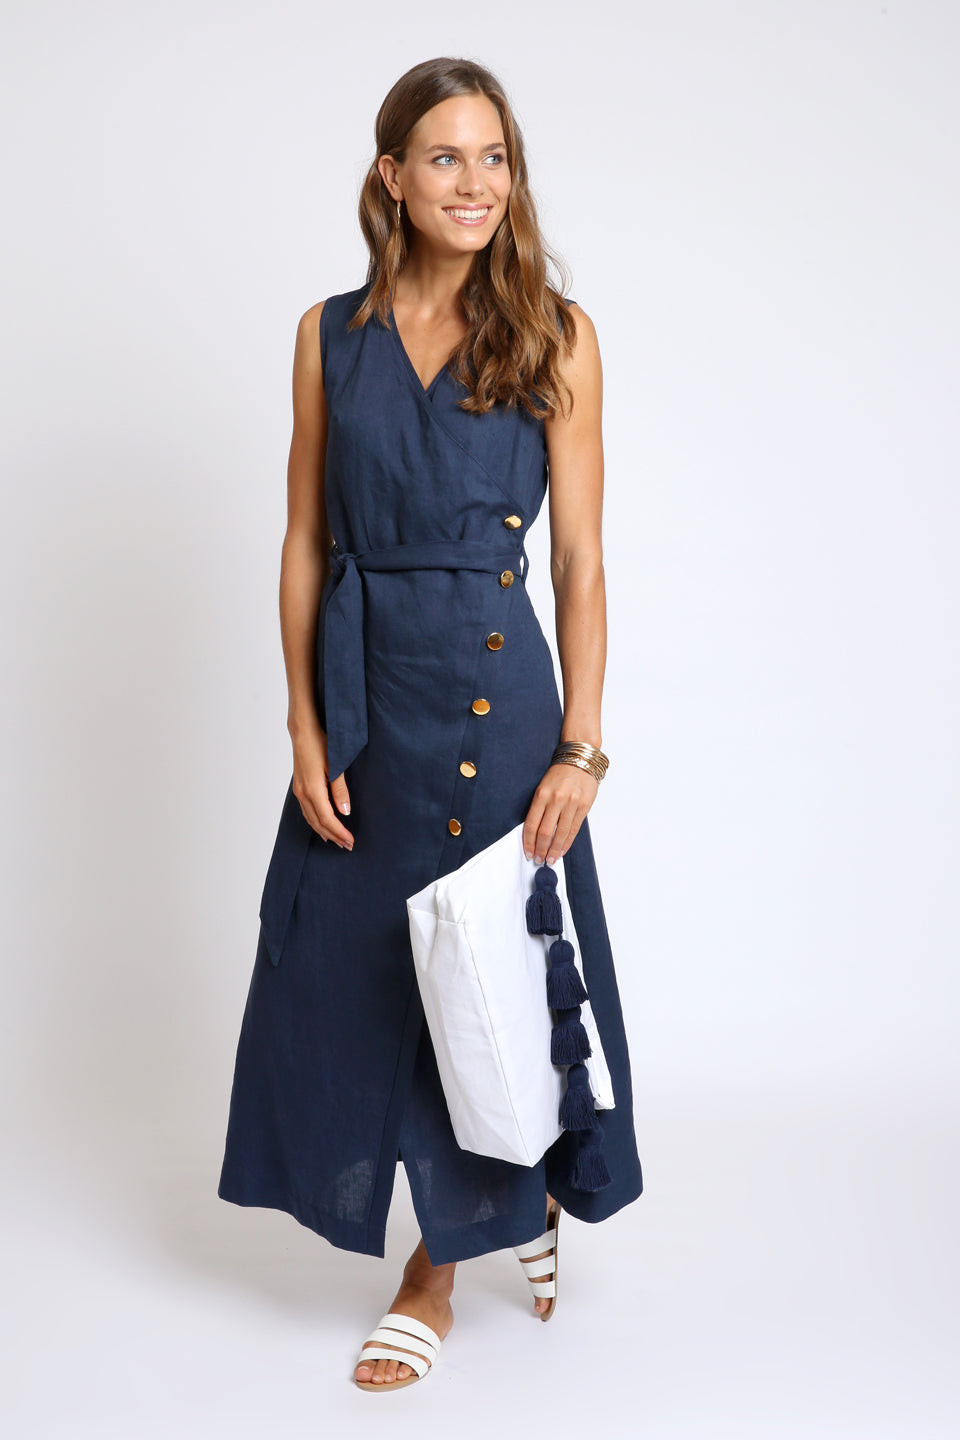 The Nella Wrap Dress - Navy